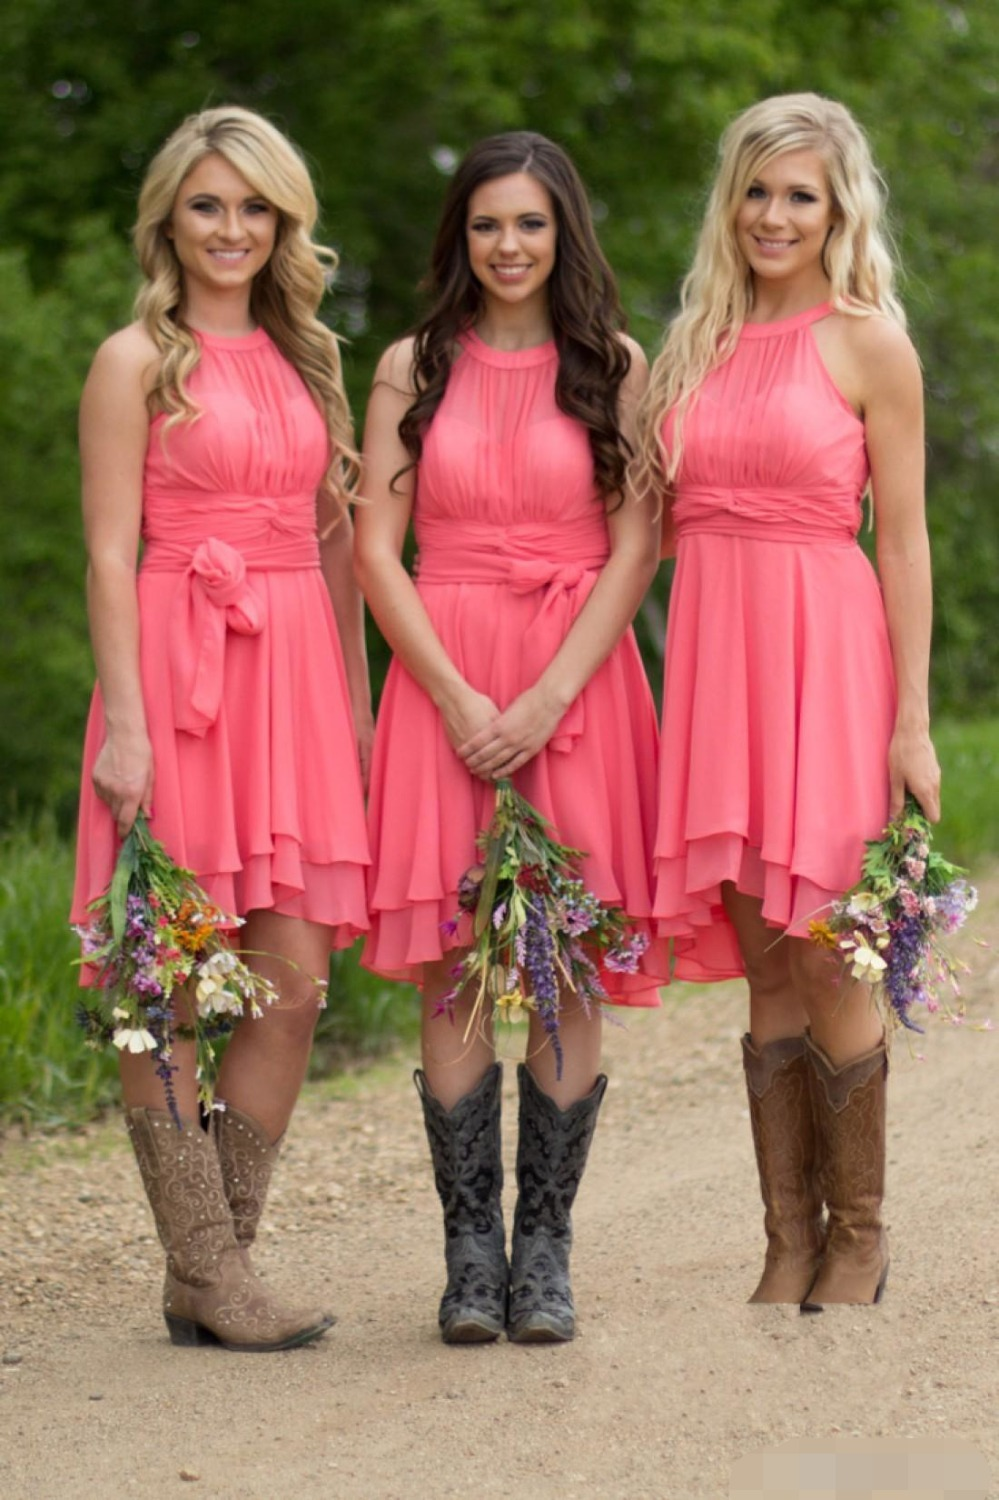 Country Style Short Bridesmaid Dresses 2019 Watermelon High Low Cheap Halter Neck Ruched Backless Summer vestido madrinha in Bridesmaid Dresses from Weddings Events